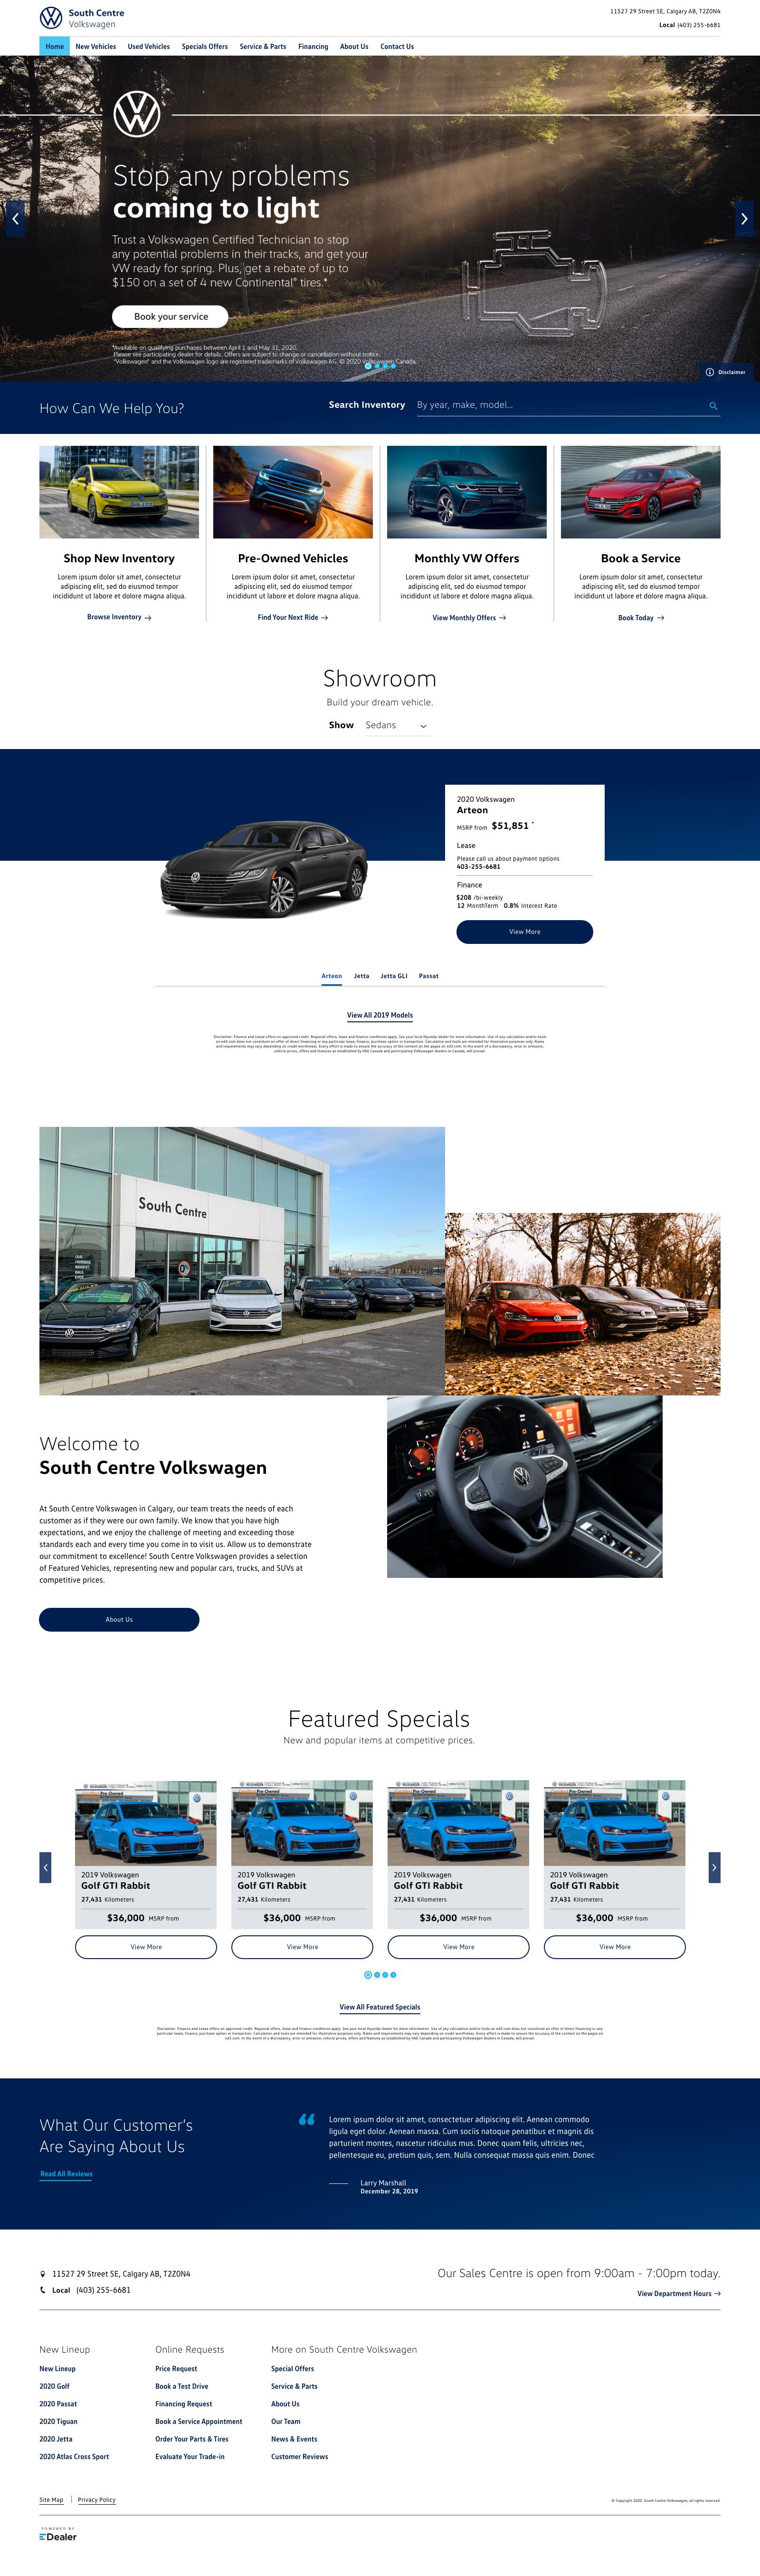 South Centre Volkswagen